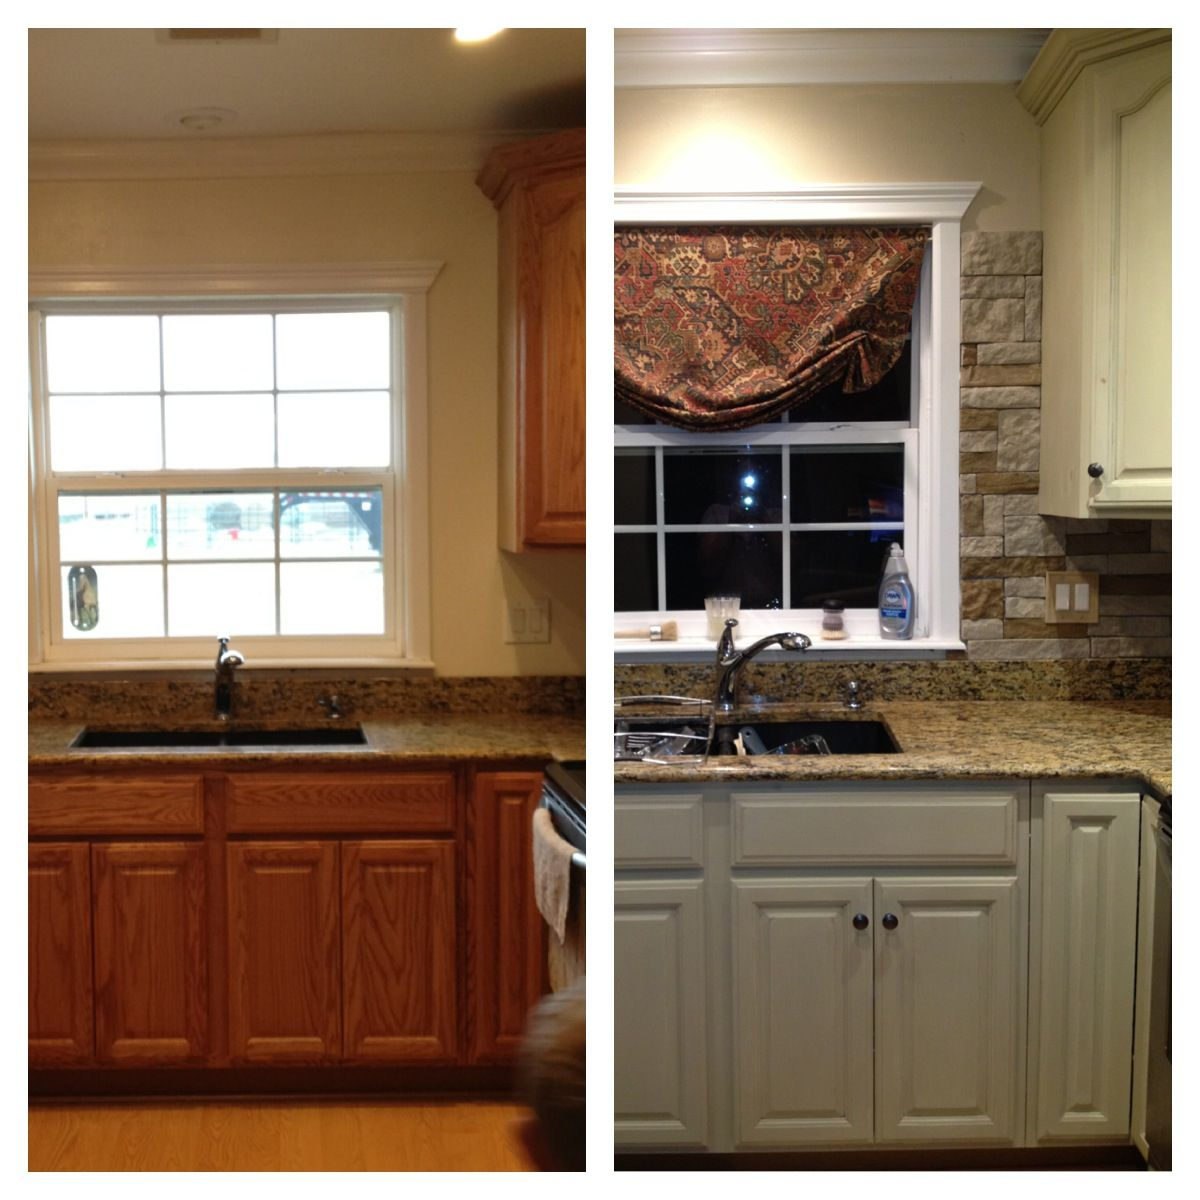 My Kitchen Update Annie Sloan Chalk Paint On Cabinets And Airstone